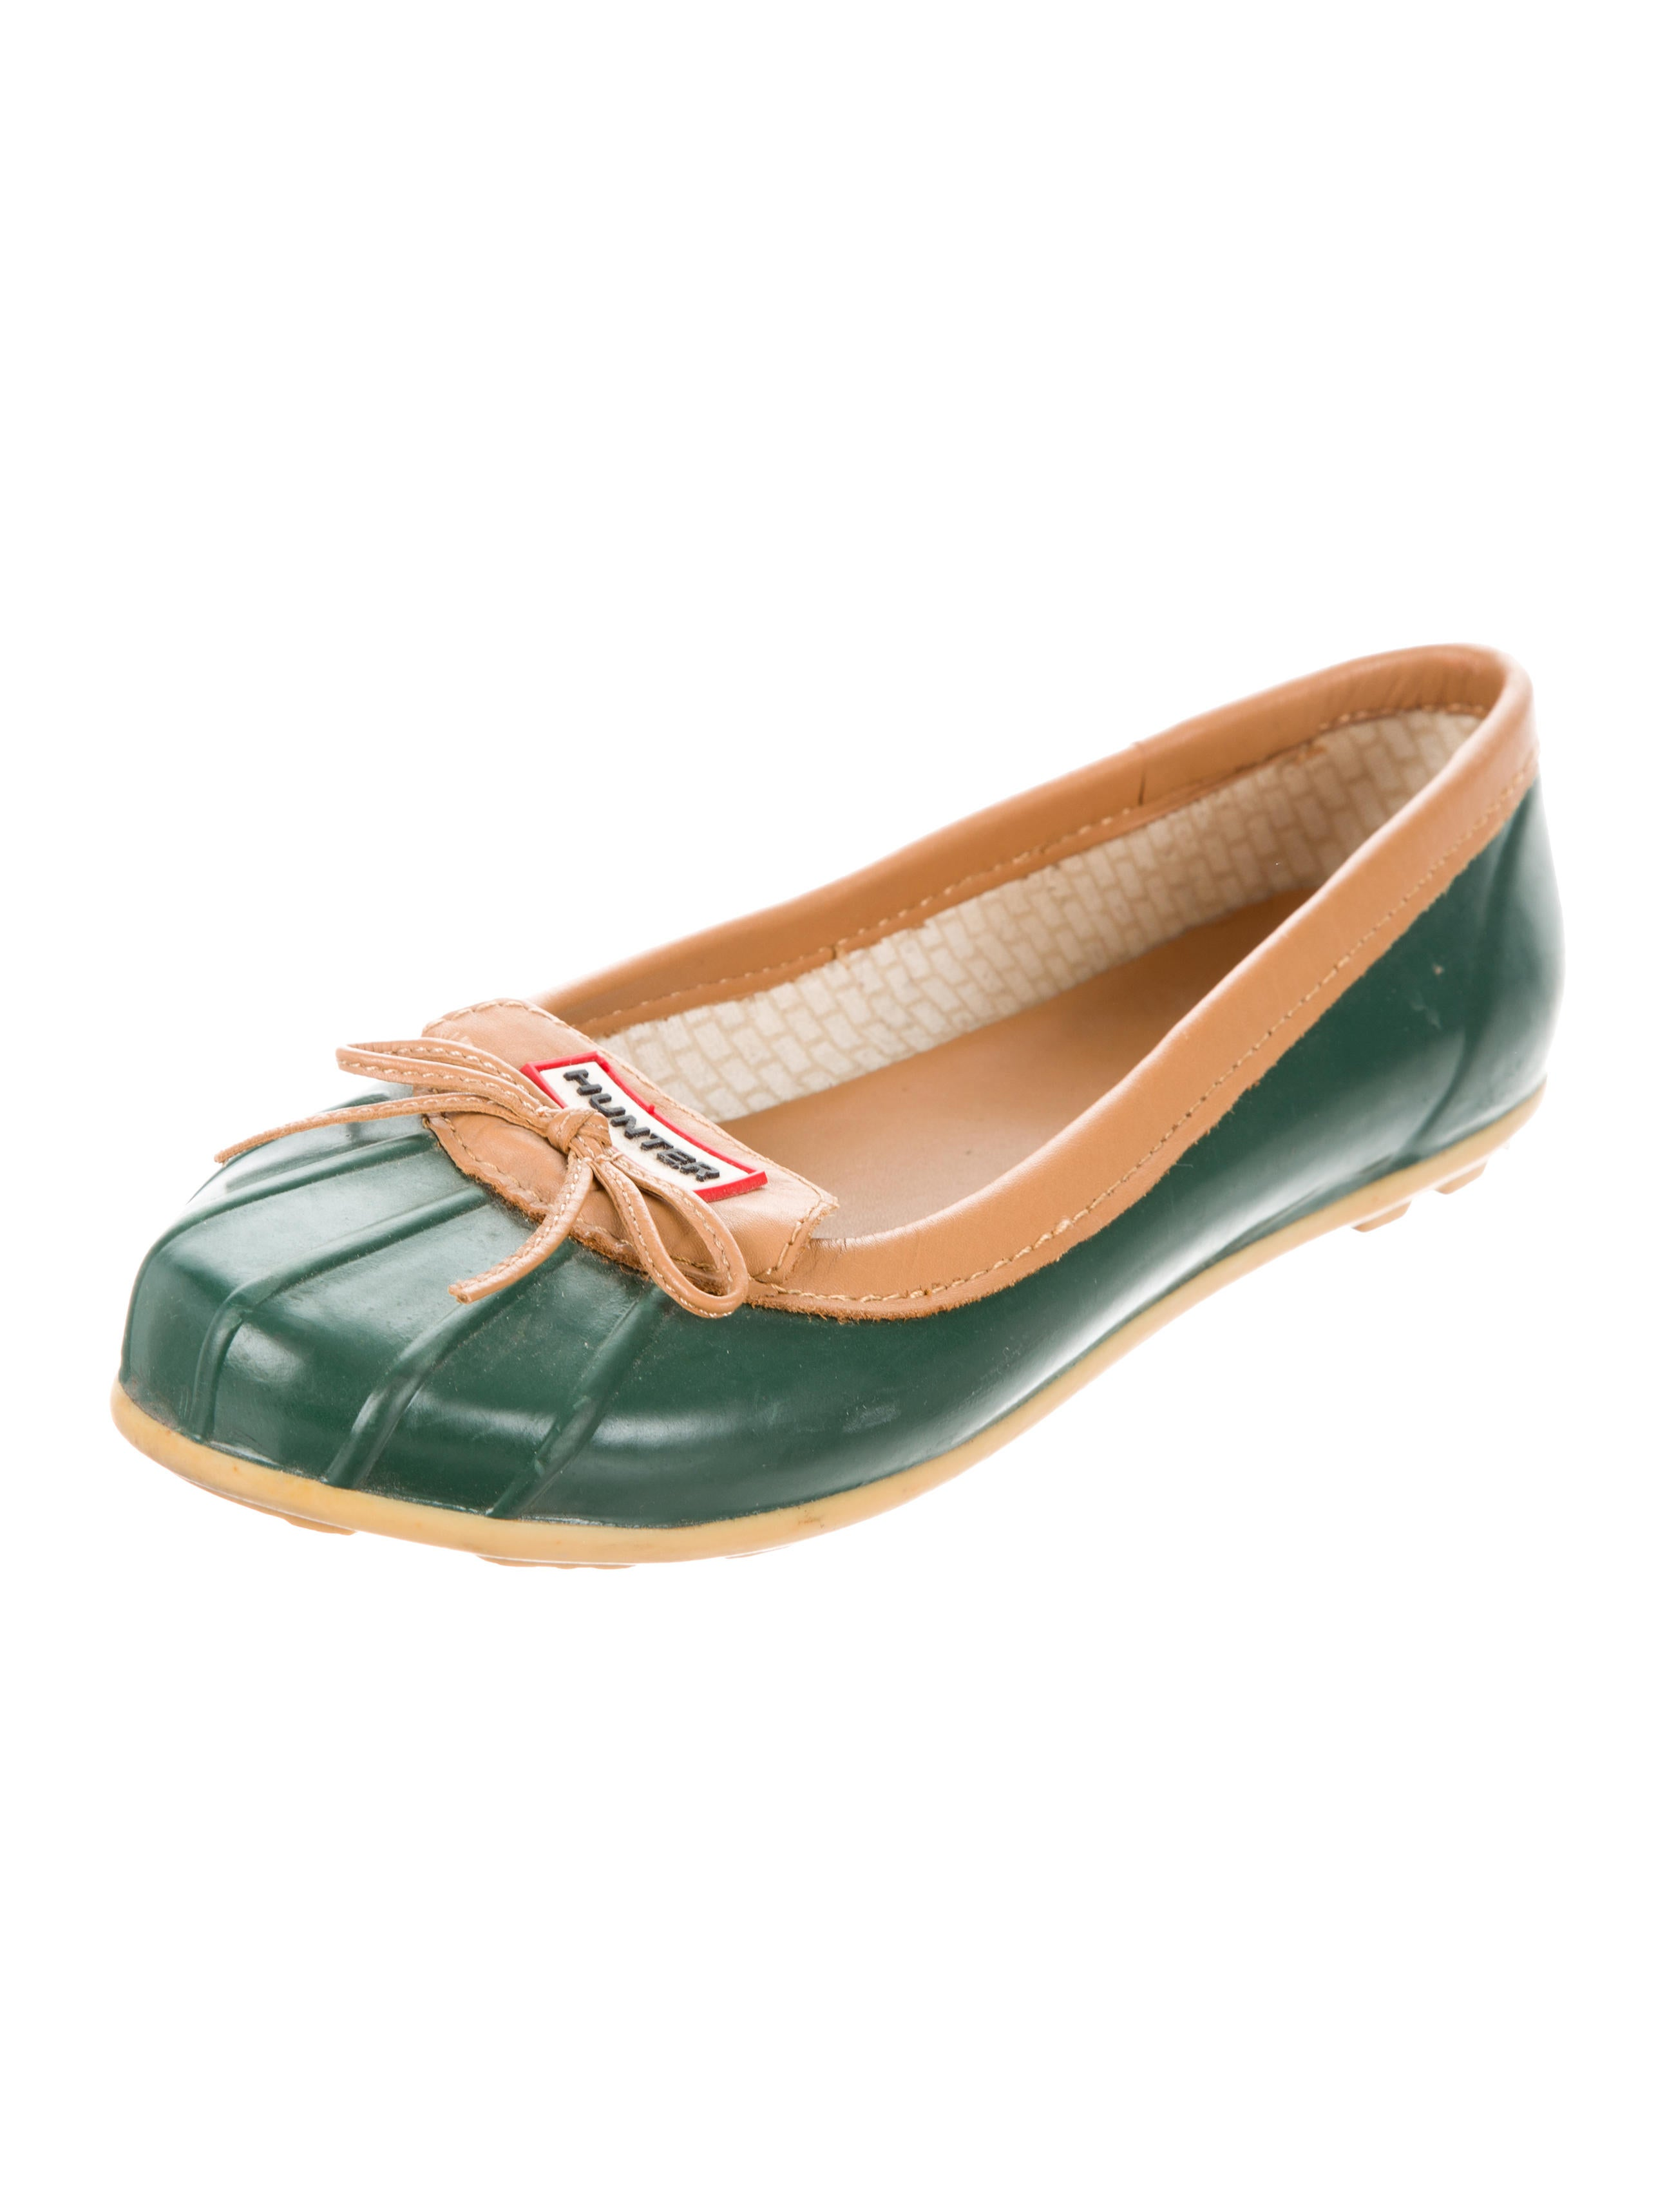 Rubber Women's Flats: funon.ml - Your Online Women's Shoes Store! Get 5% in rewards with Club O!